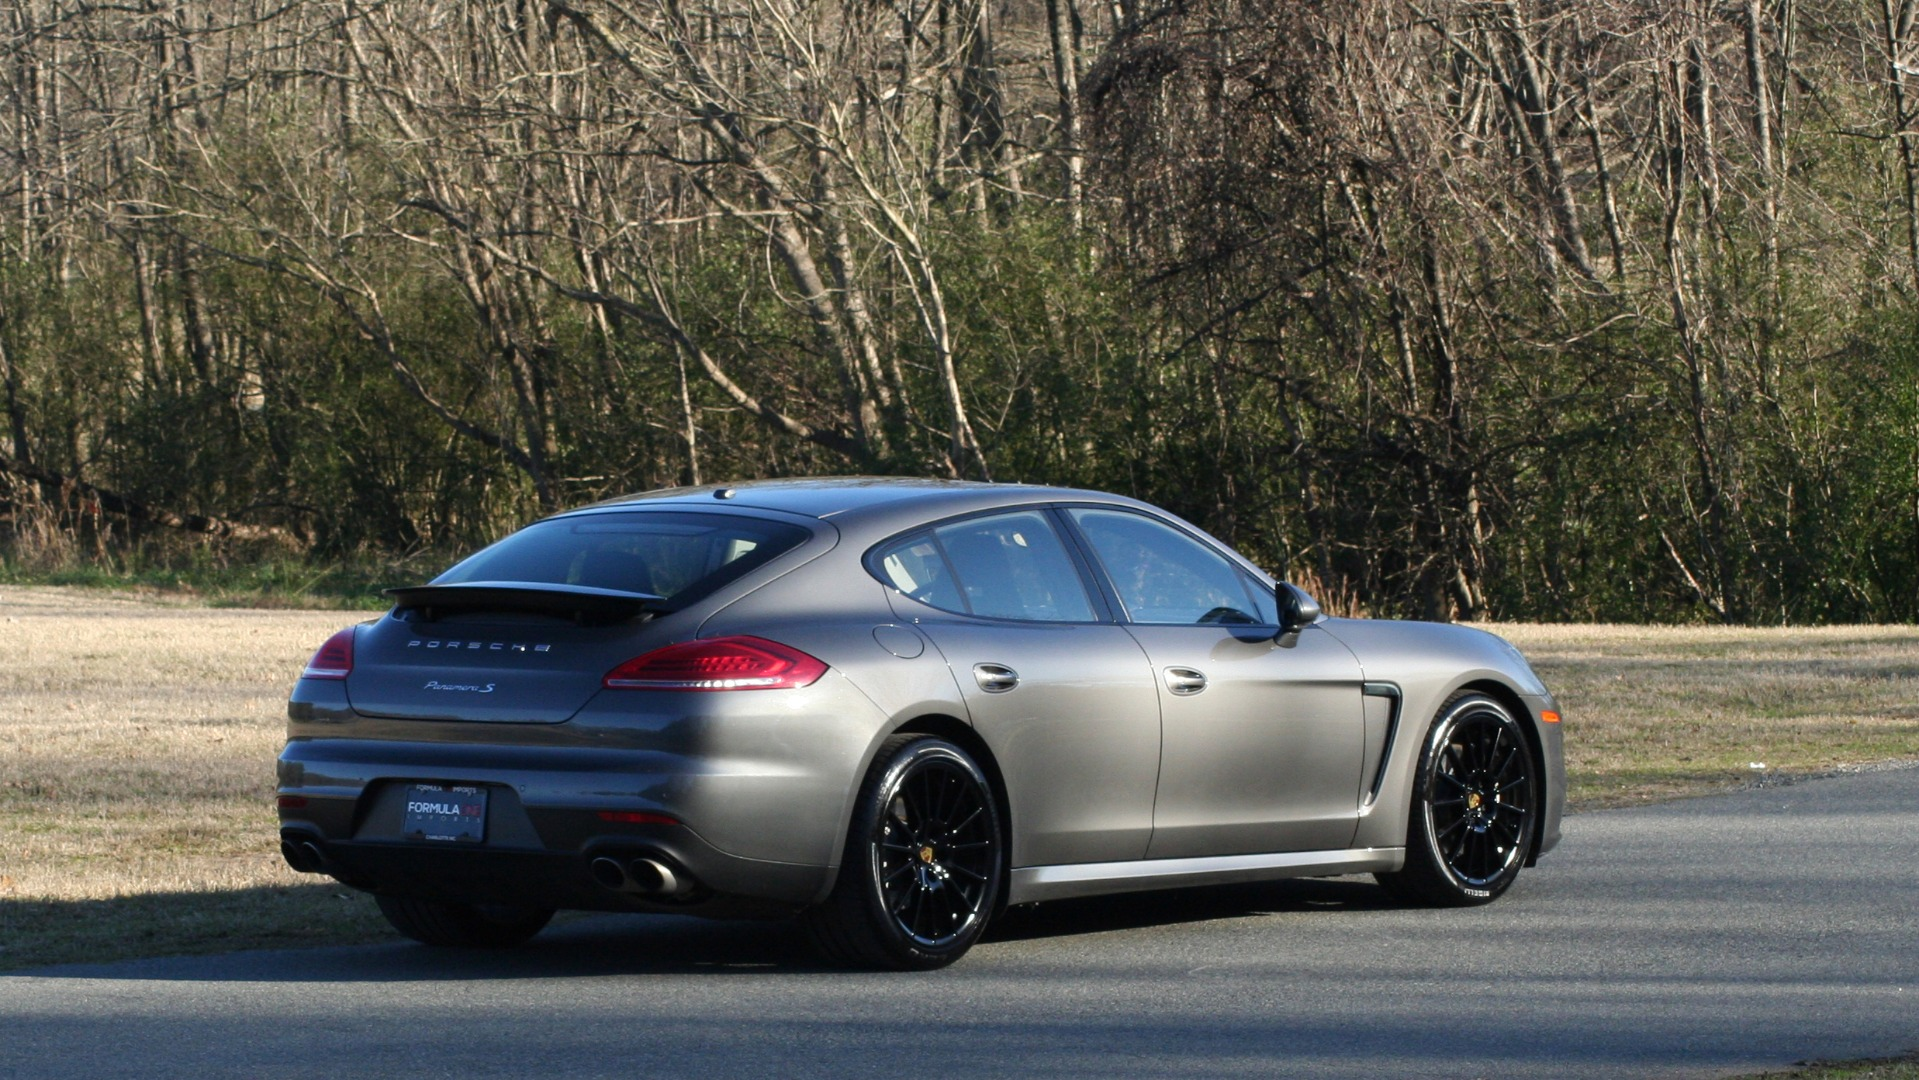 Used 2016 Porsche PANAMERA S / TURBO V6 / PDK / NAV / BOSE / SNRF / LDW / REARVIEW for sale Sold at Formula Imports in Charlotte NC 28227 13